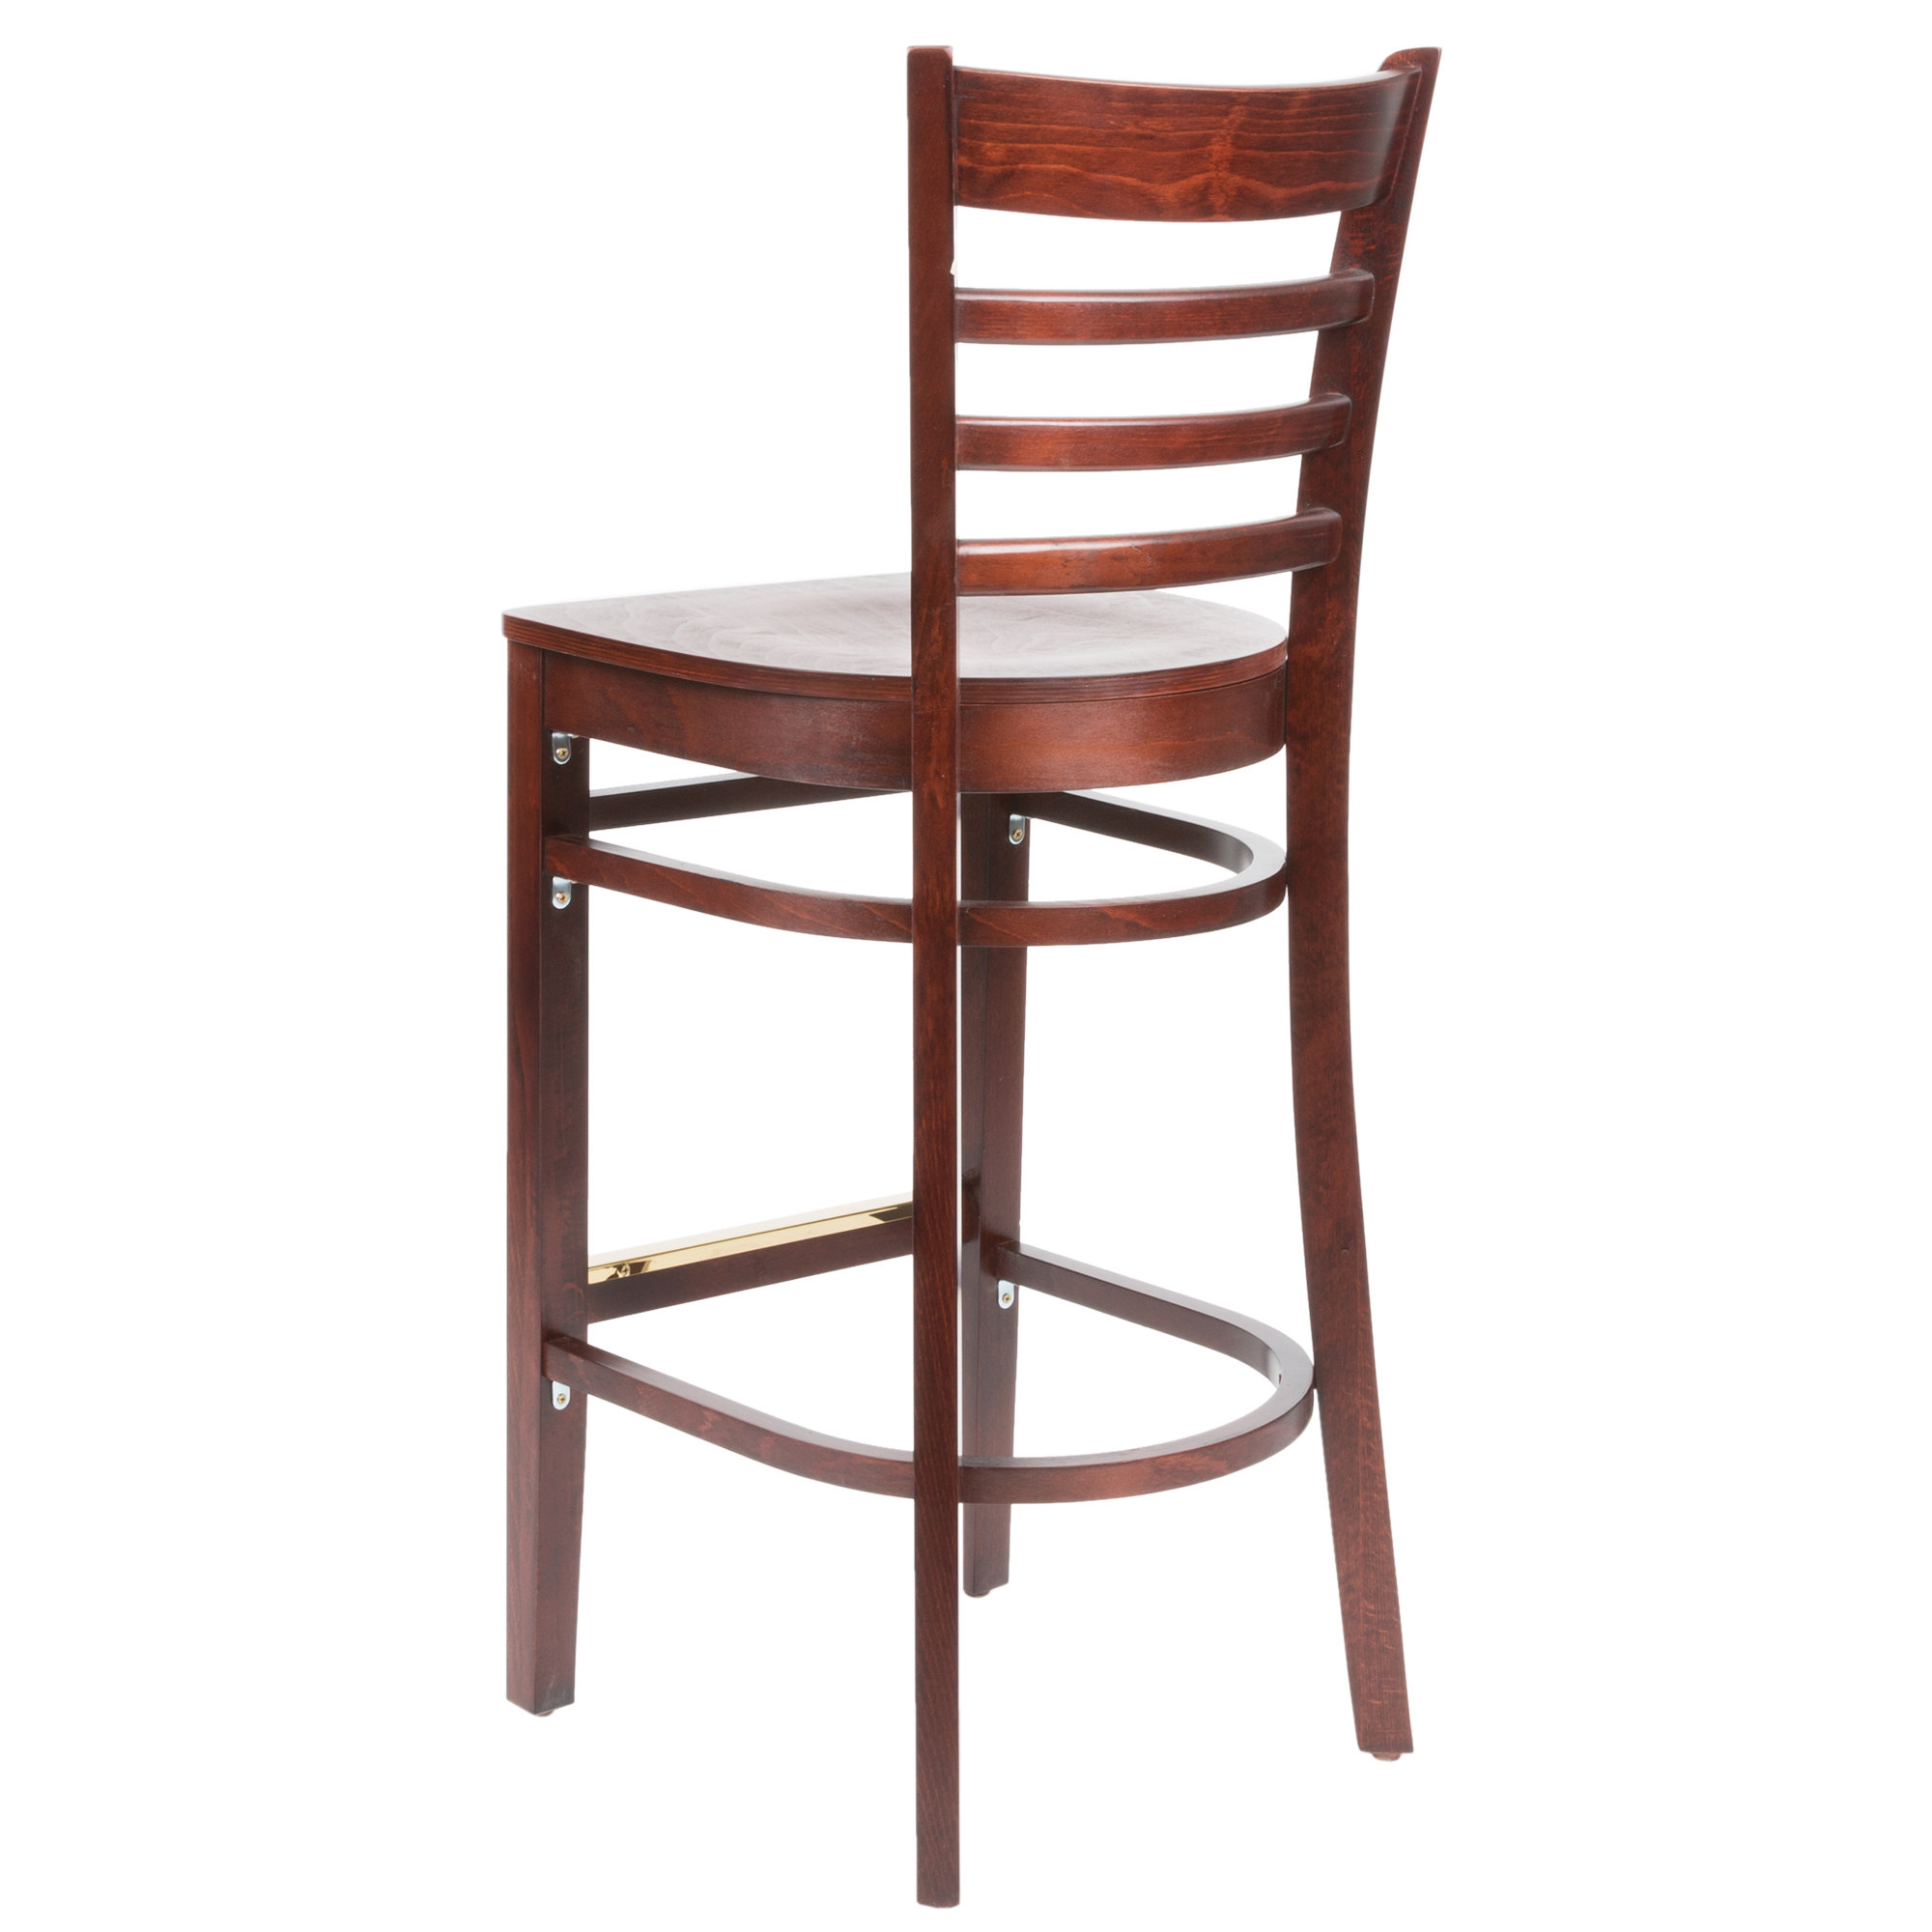 #61 - Mahogany Wood Finished Ladder Back Restaurant Barstool